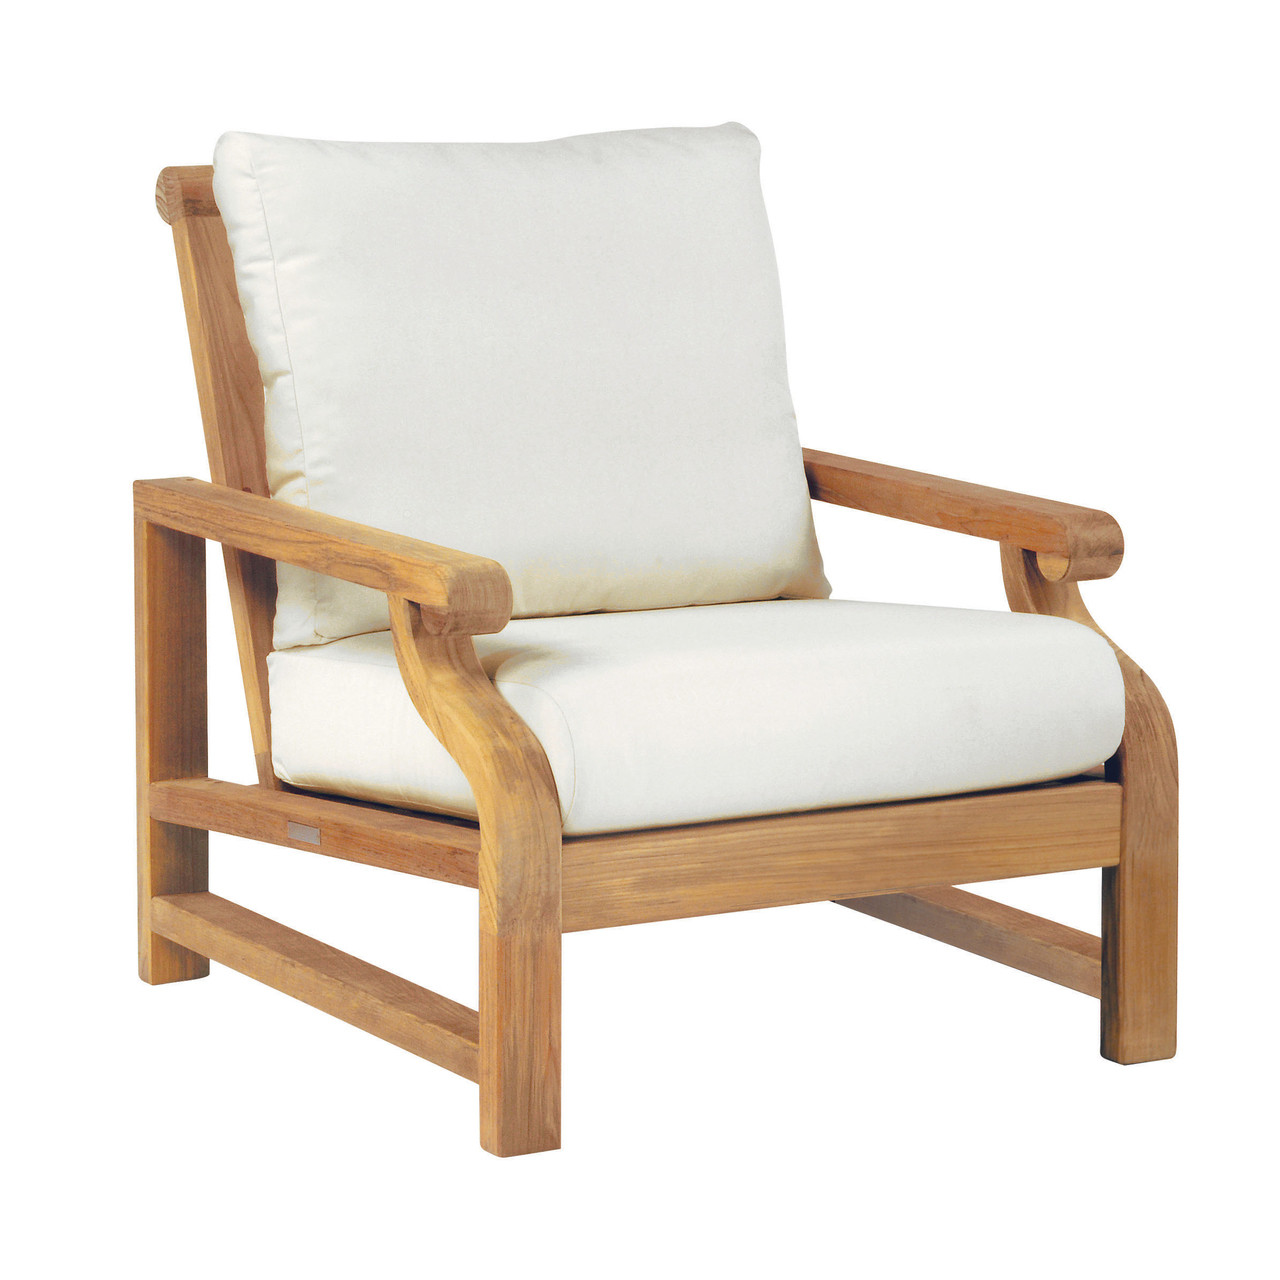 Cool Furniture Cover For Kingsley Bate Nantucket Deep Seating Lounge Chair Nt30 Pdpeps Interior Chair Design Pdpepsorg